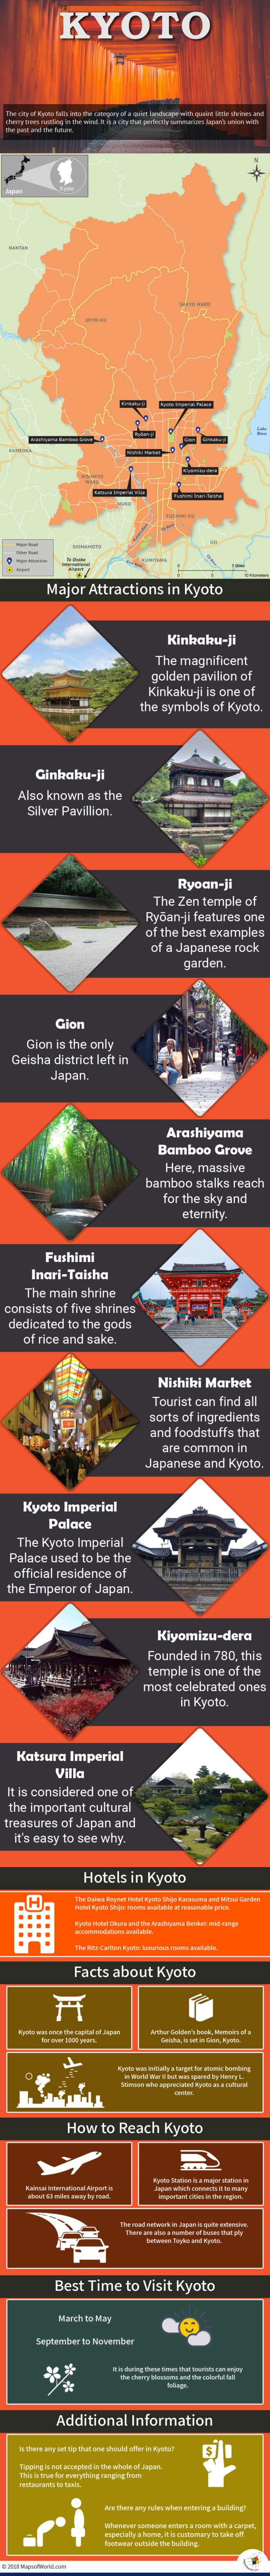 Infographic Depicting Kyoto Tourist Attractions